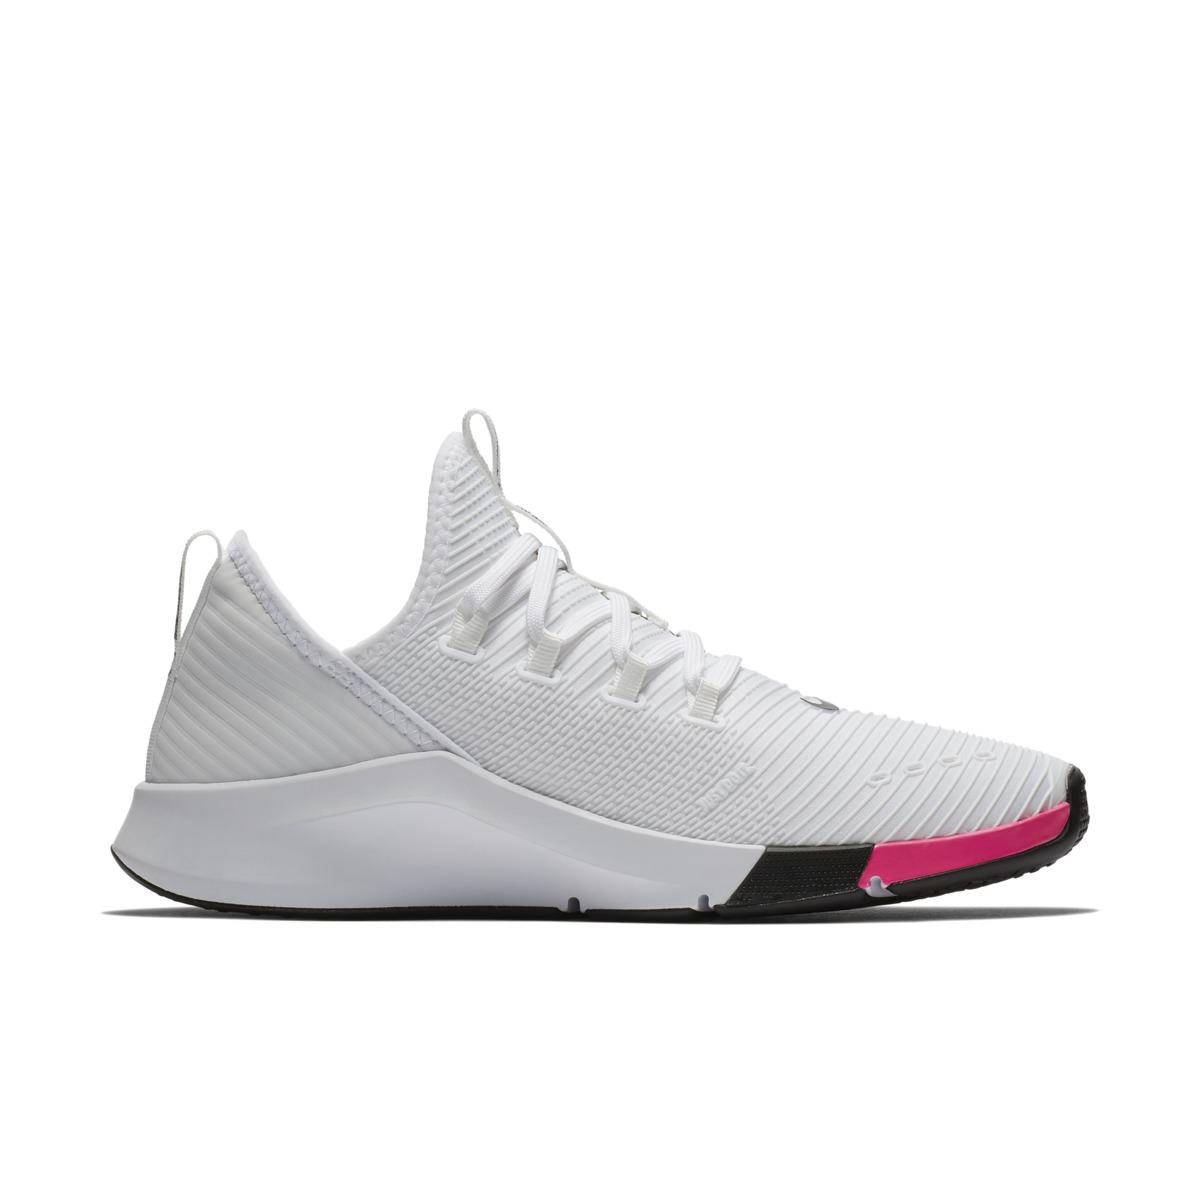 67c7d5dfa216 Nike Air Zoom Elevate Fitness cross Training Shoes in White - Lyst